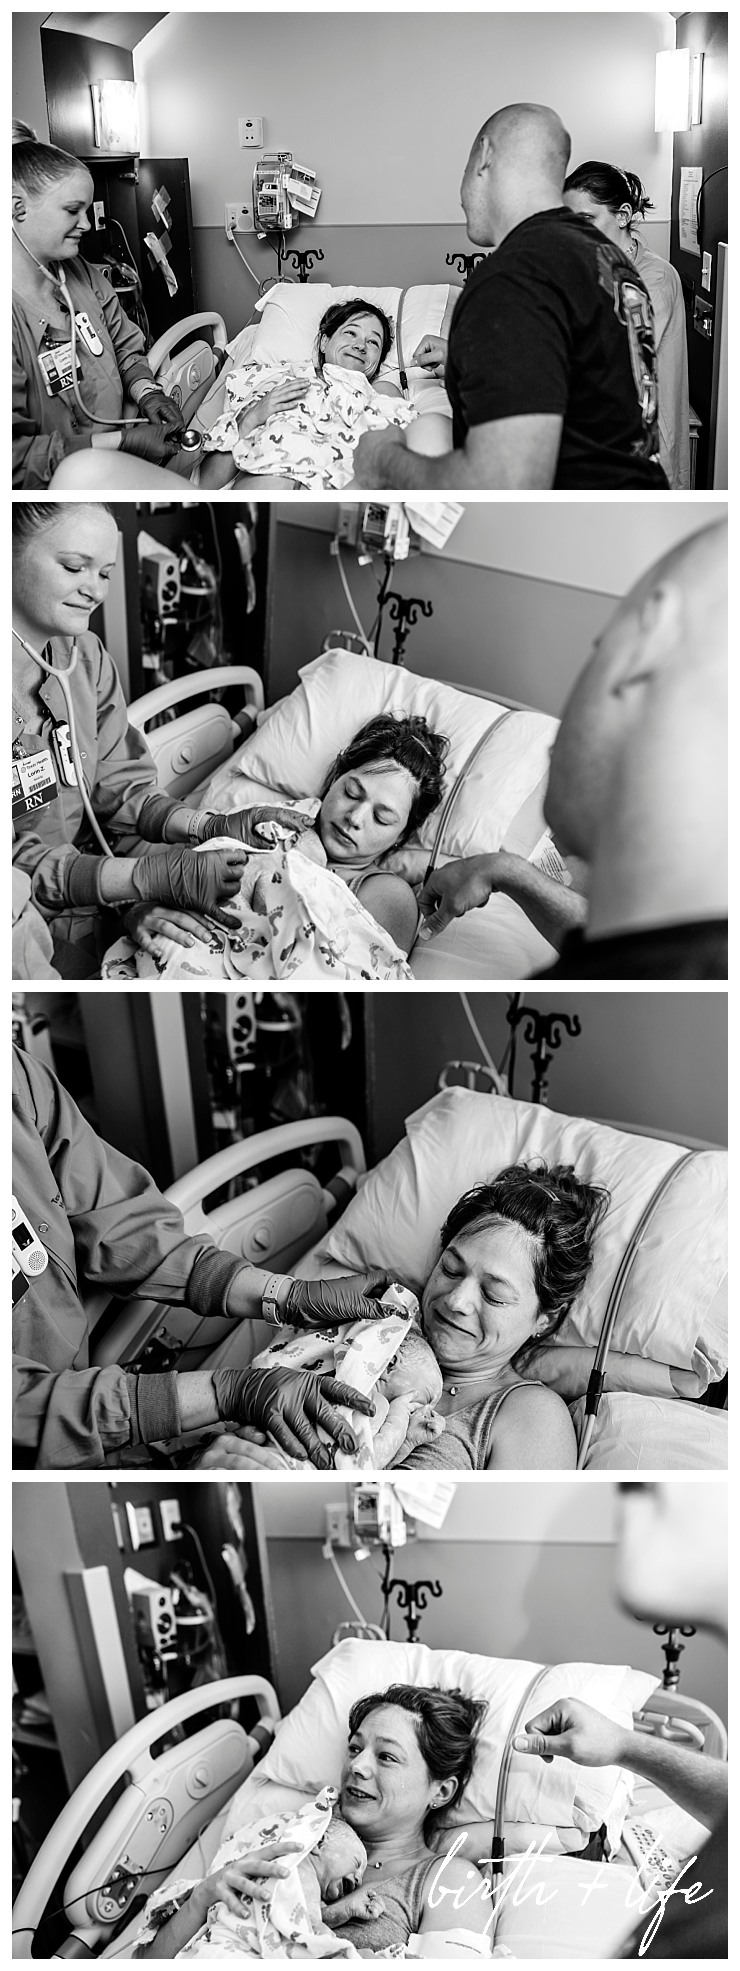 dfw-birth-and-life-photography-family-photojournalism-documentary-birth-storyacclaim-midwives-clark032.jpg